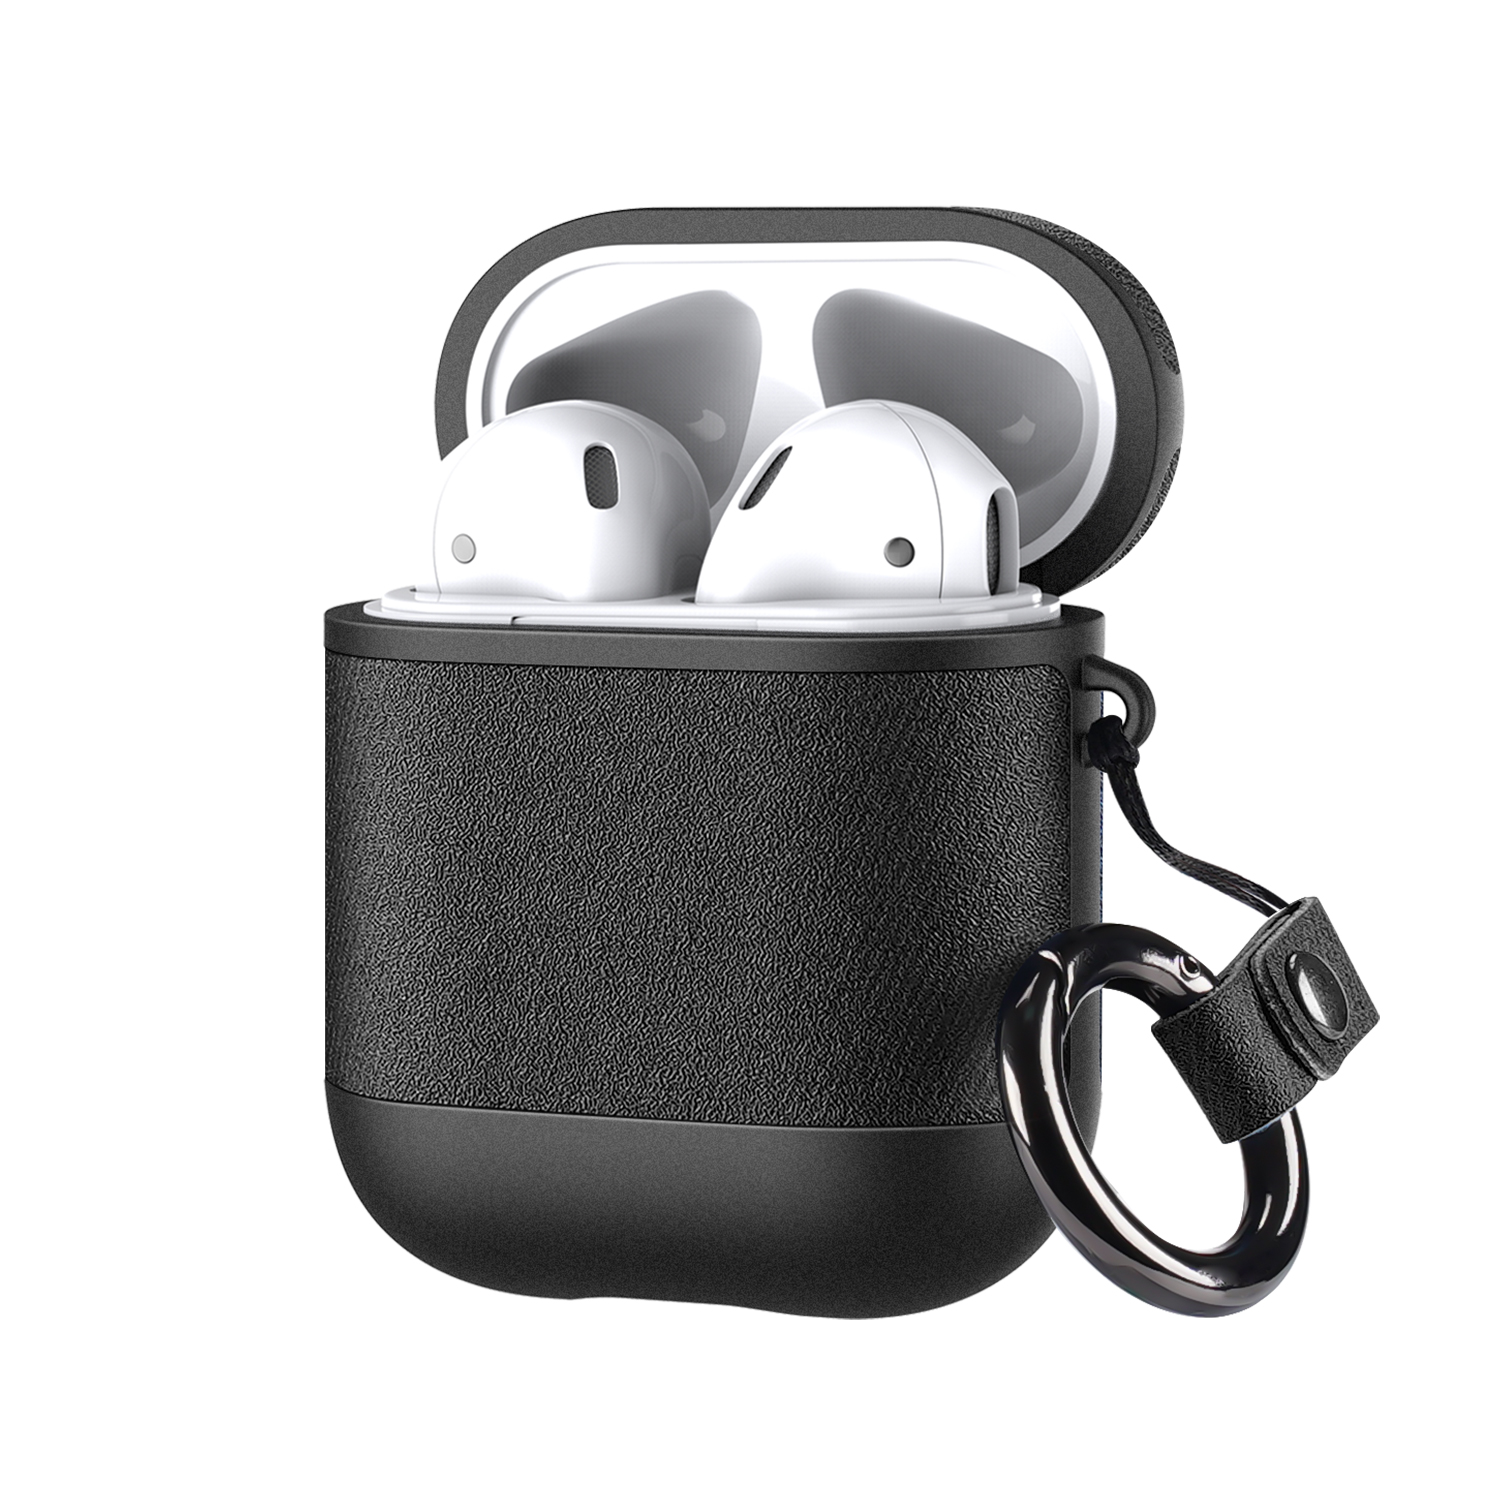 DUX DUCIS Luxury PU Leather Shockproof Earphone Storage Case with Anti-lost Hook for Airpods 1 / AirPods 2